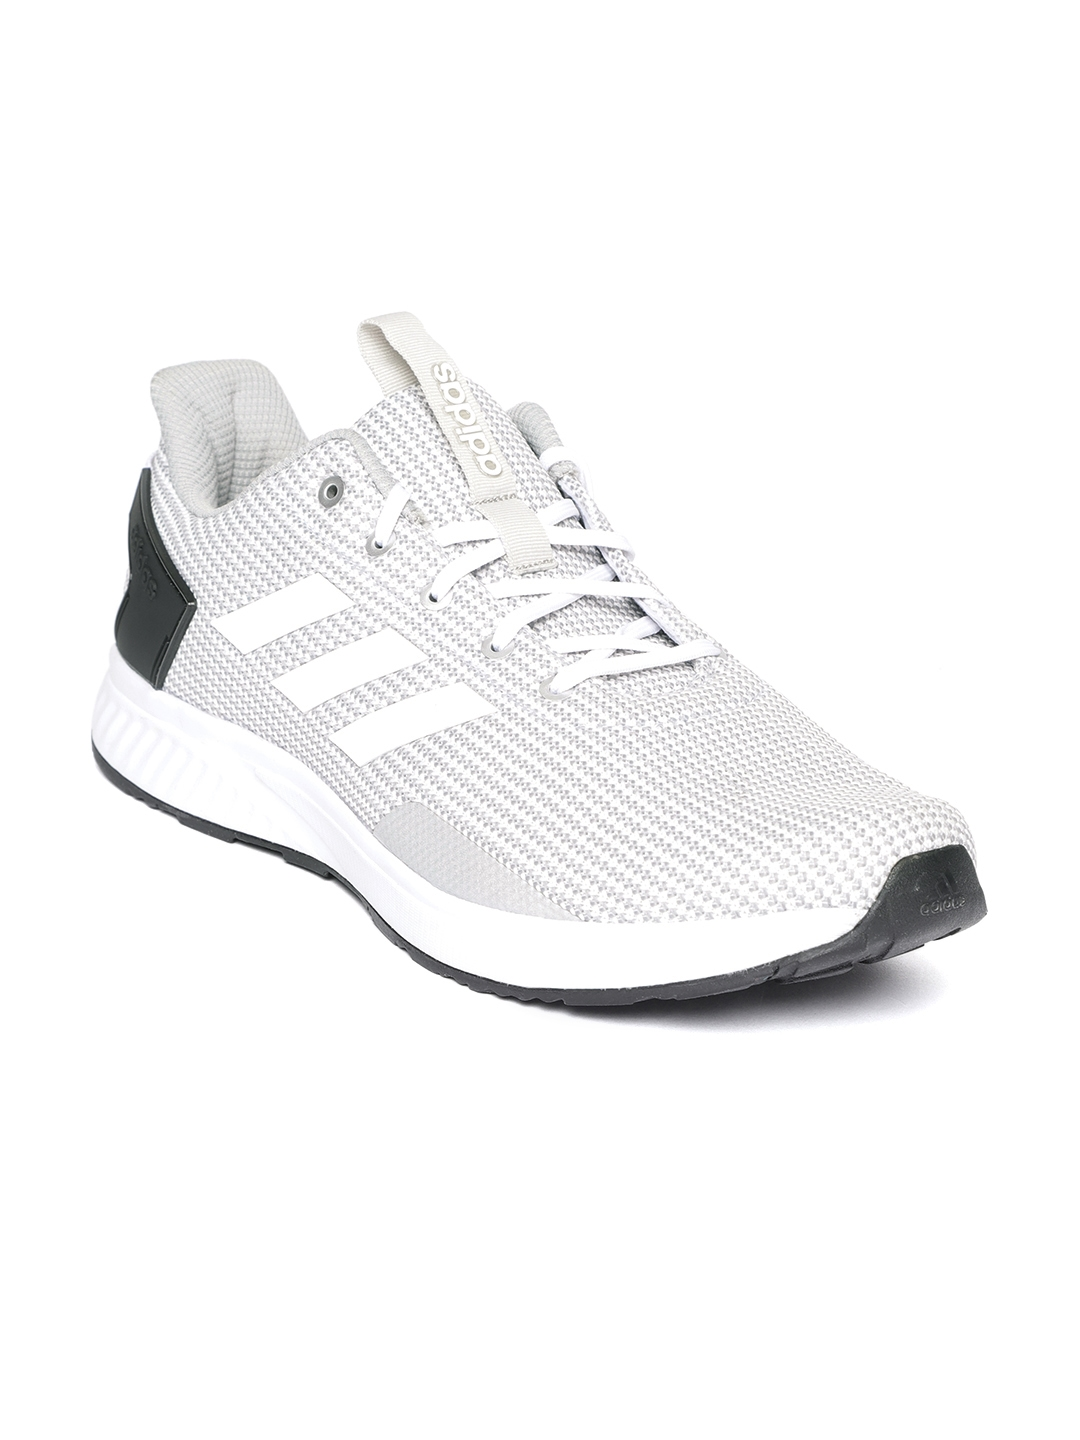 finest selection 7dcf9 8ee3f ADIDAS Men Grey  White FURIO 1.0 Running Shoes